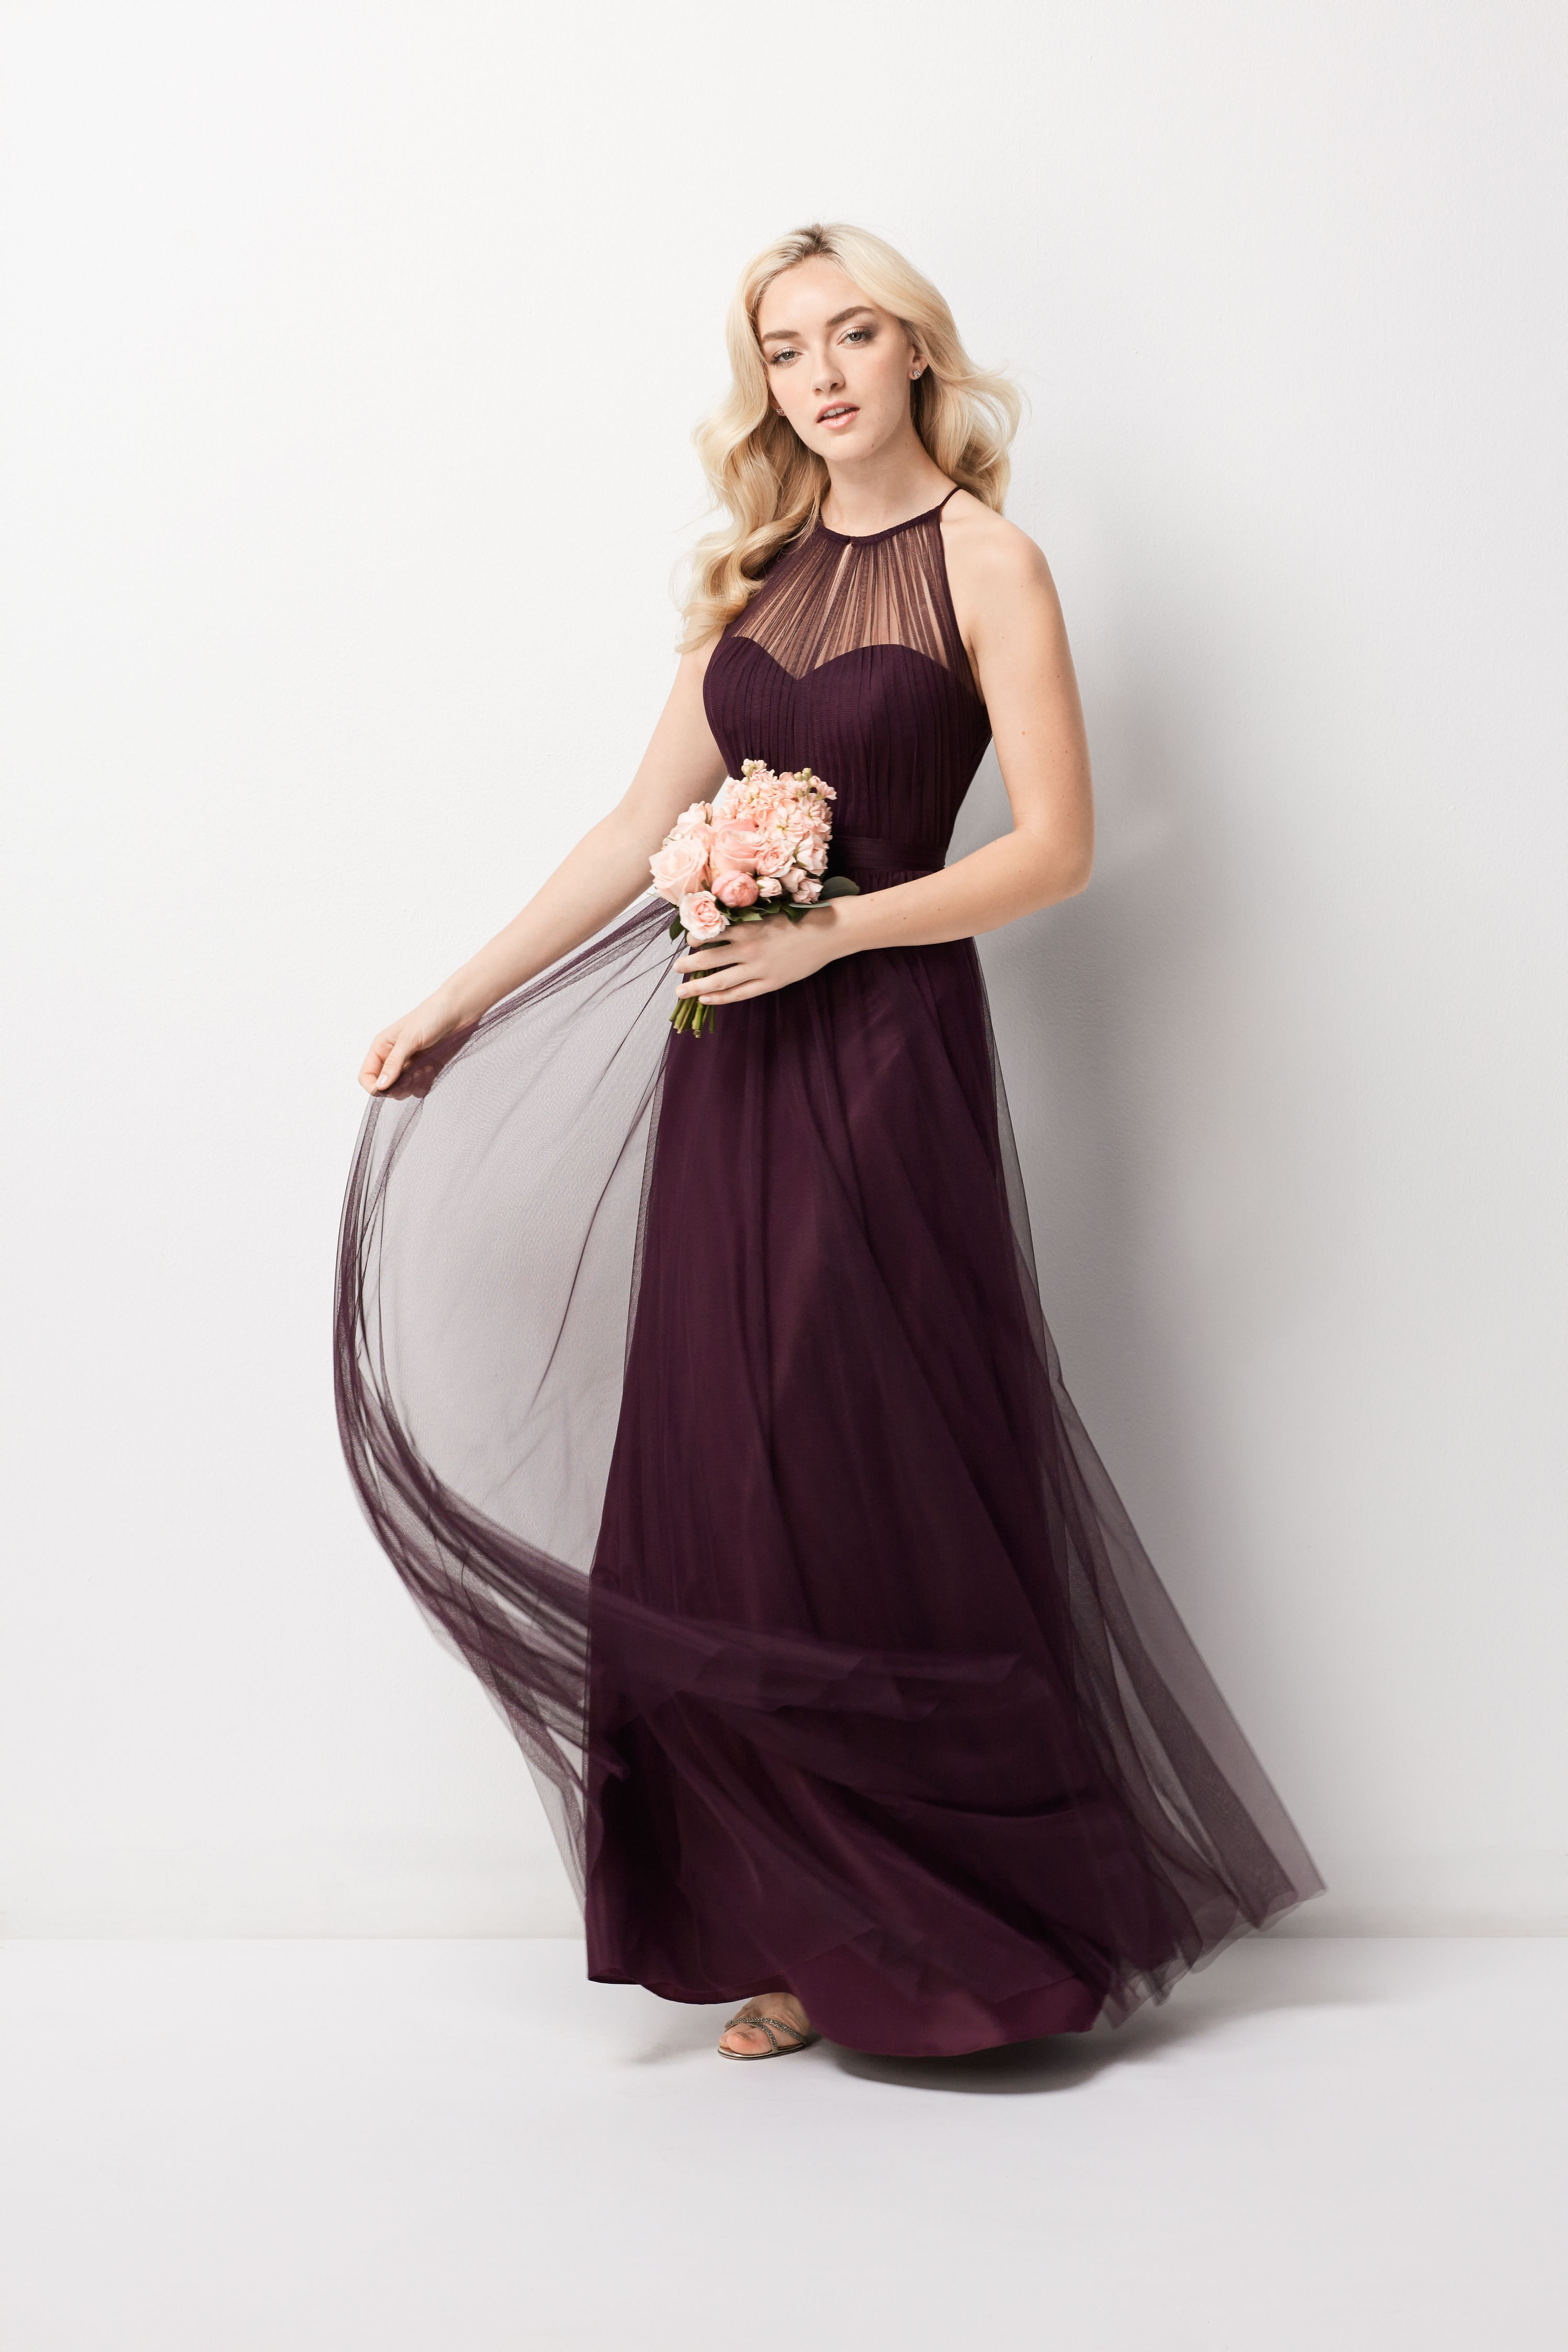 Watterswtoo bridesmaids dress style 242 the dress collection watterswtoo bridesmaids dress style 242 ombrellifo Gallery